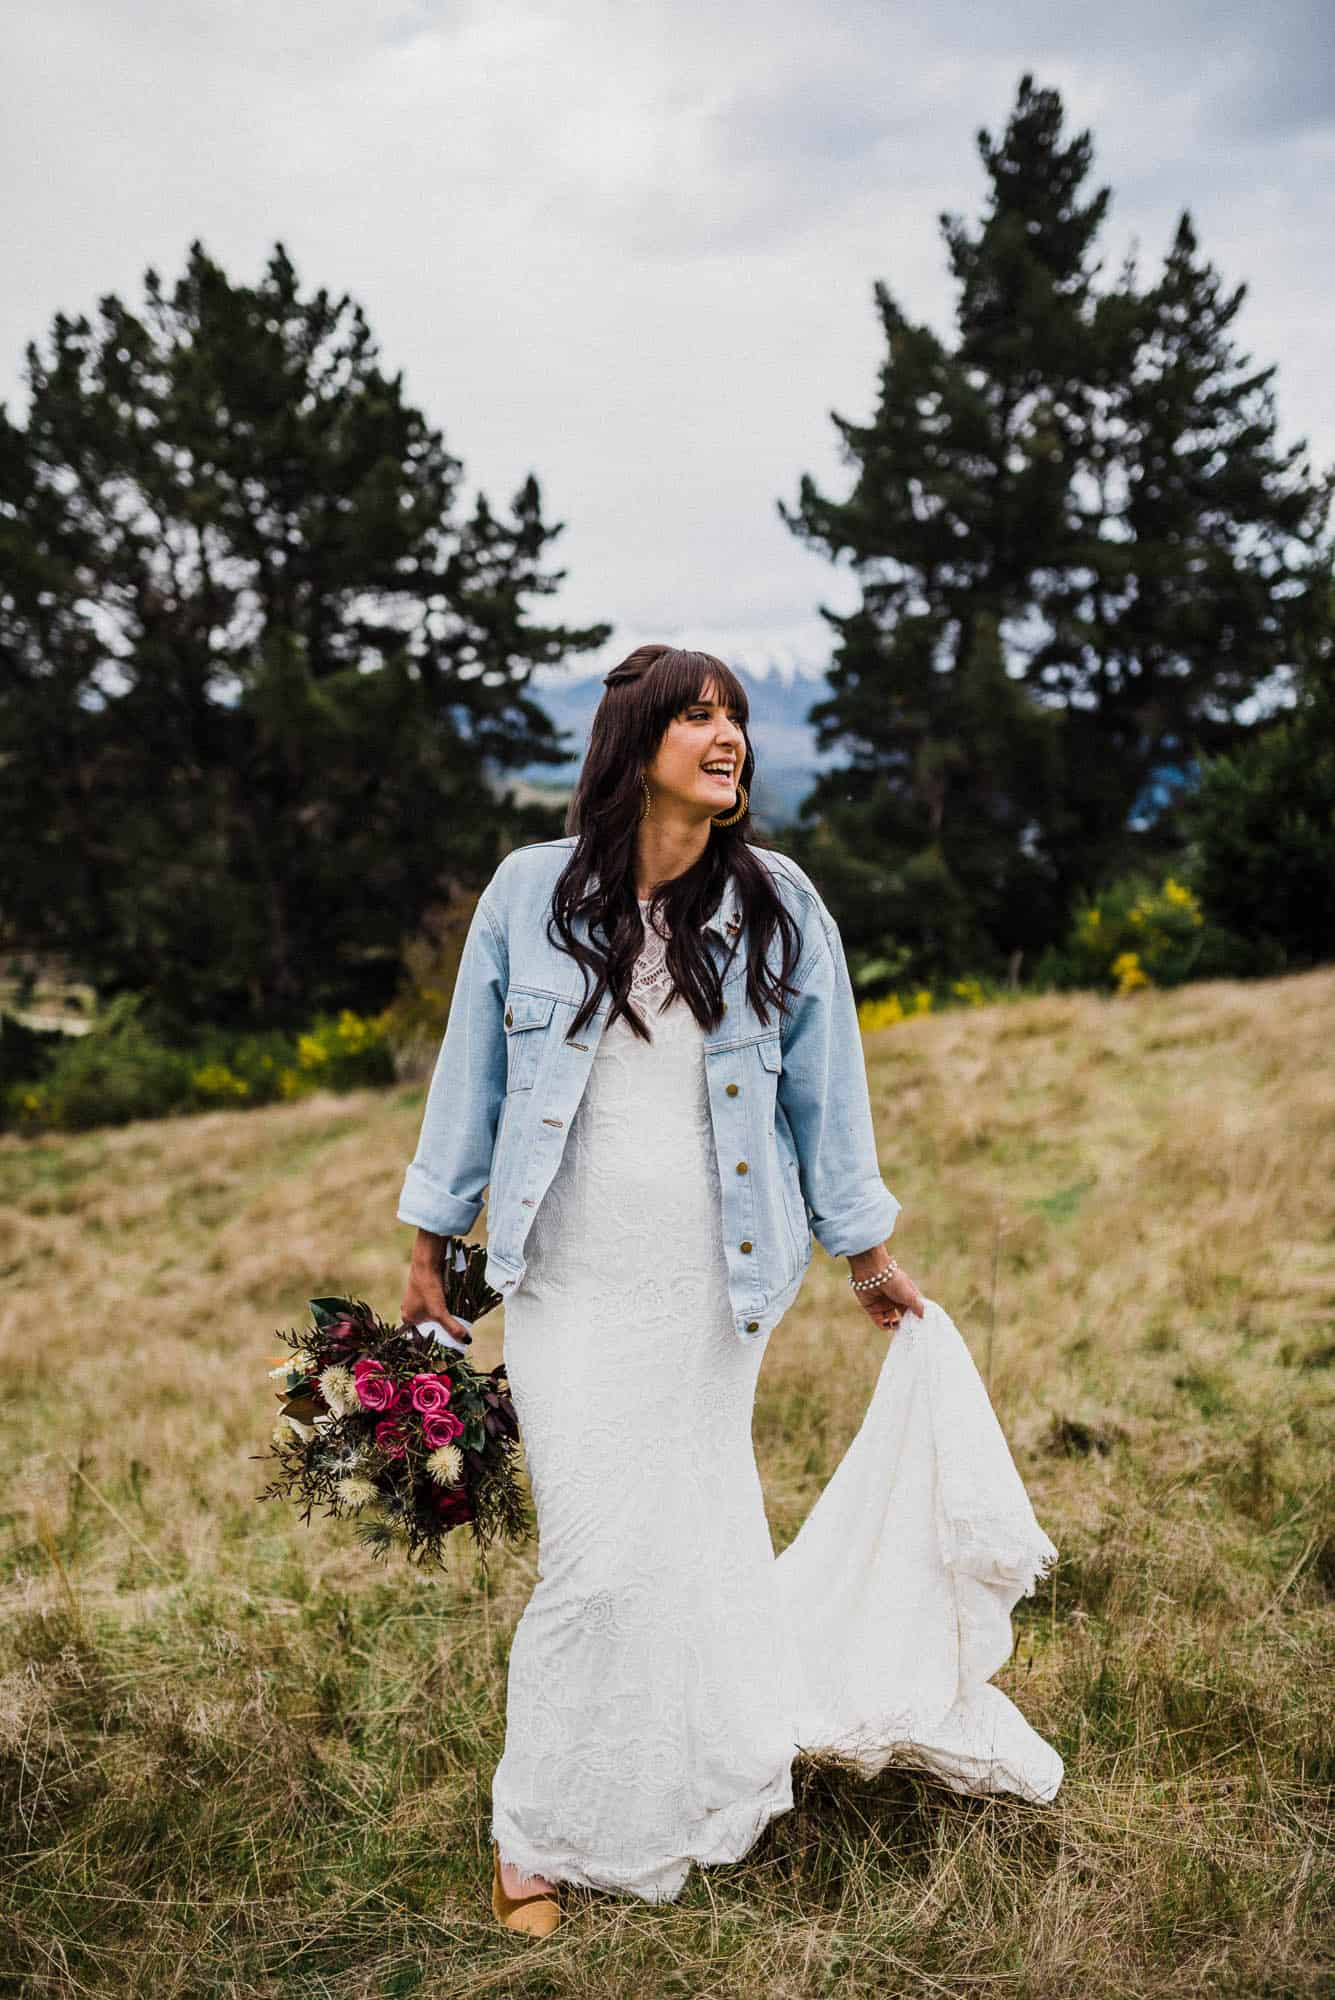 Bride poses for portrait on top of grassy hill with mountains and pine trees behind her on overcast day